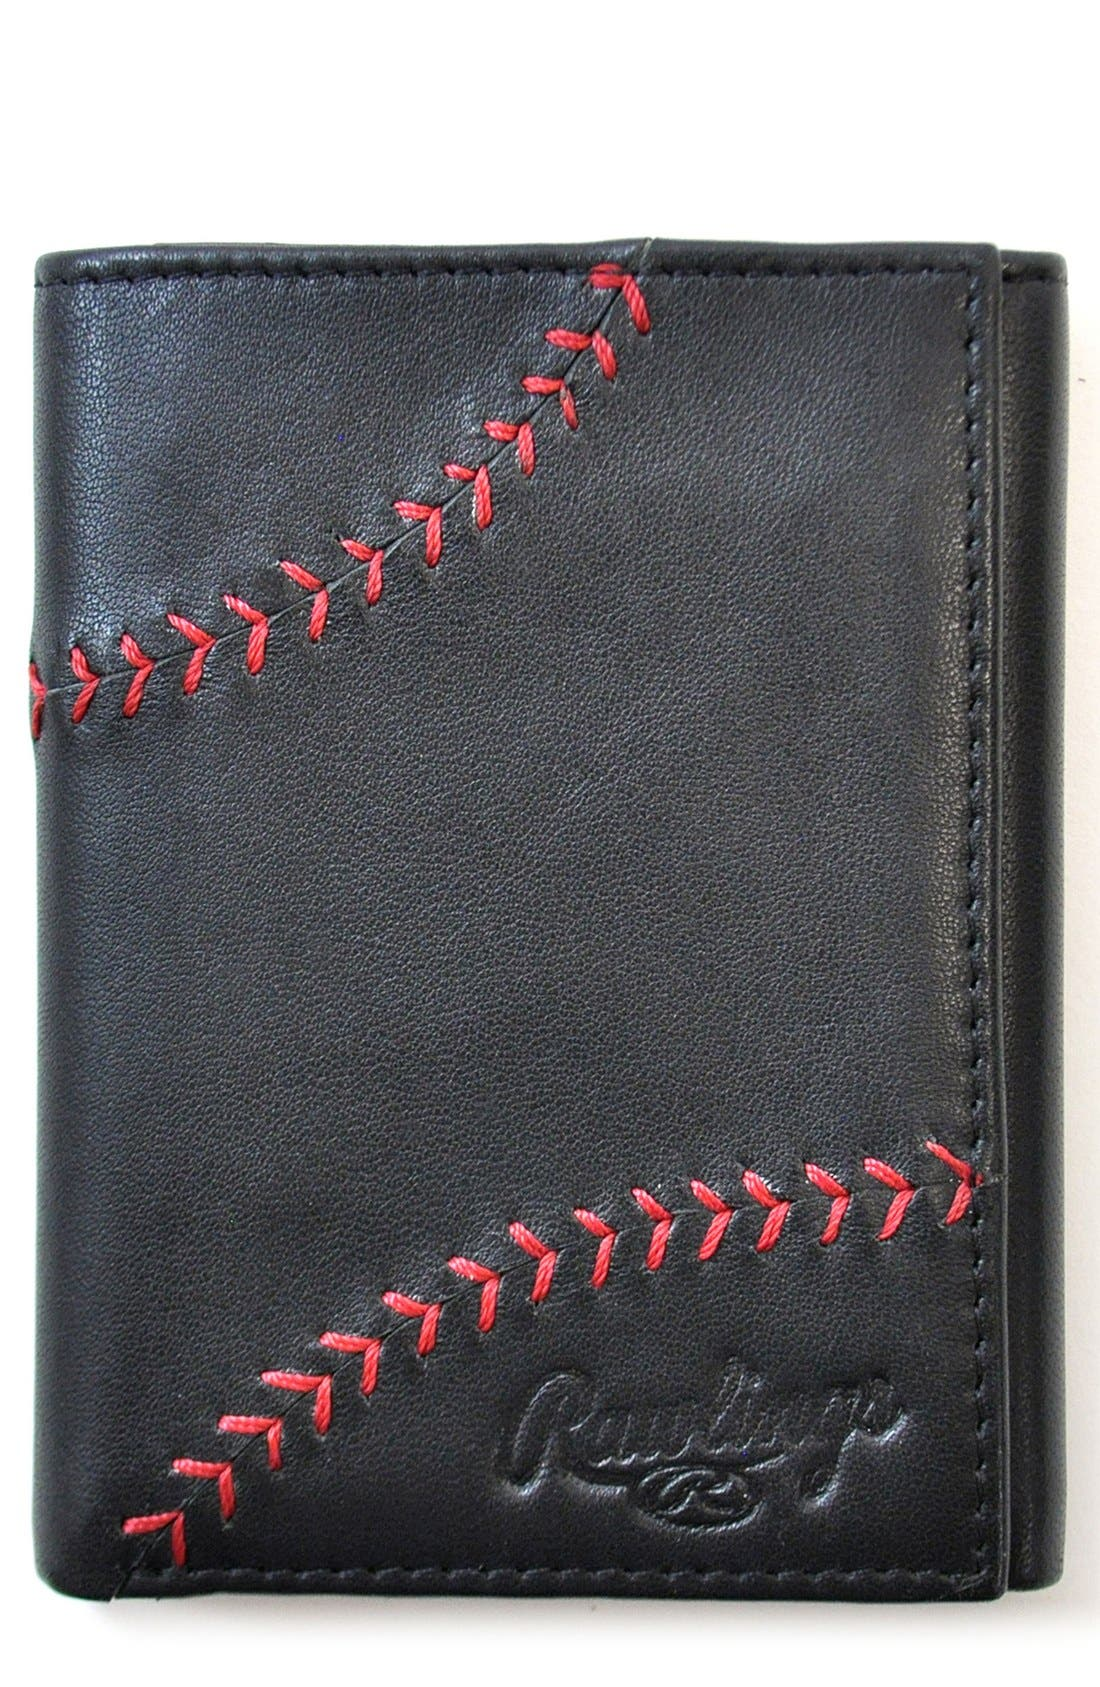 Rawlings® Baseball Stitch Leather Trifold Wallet